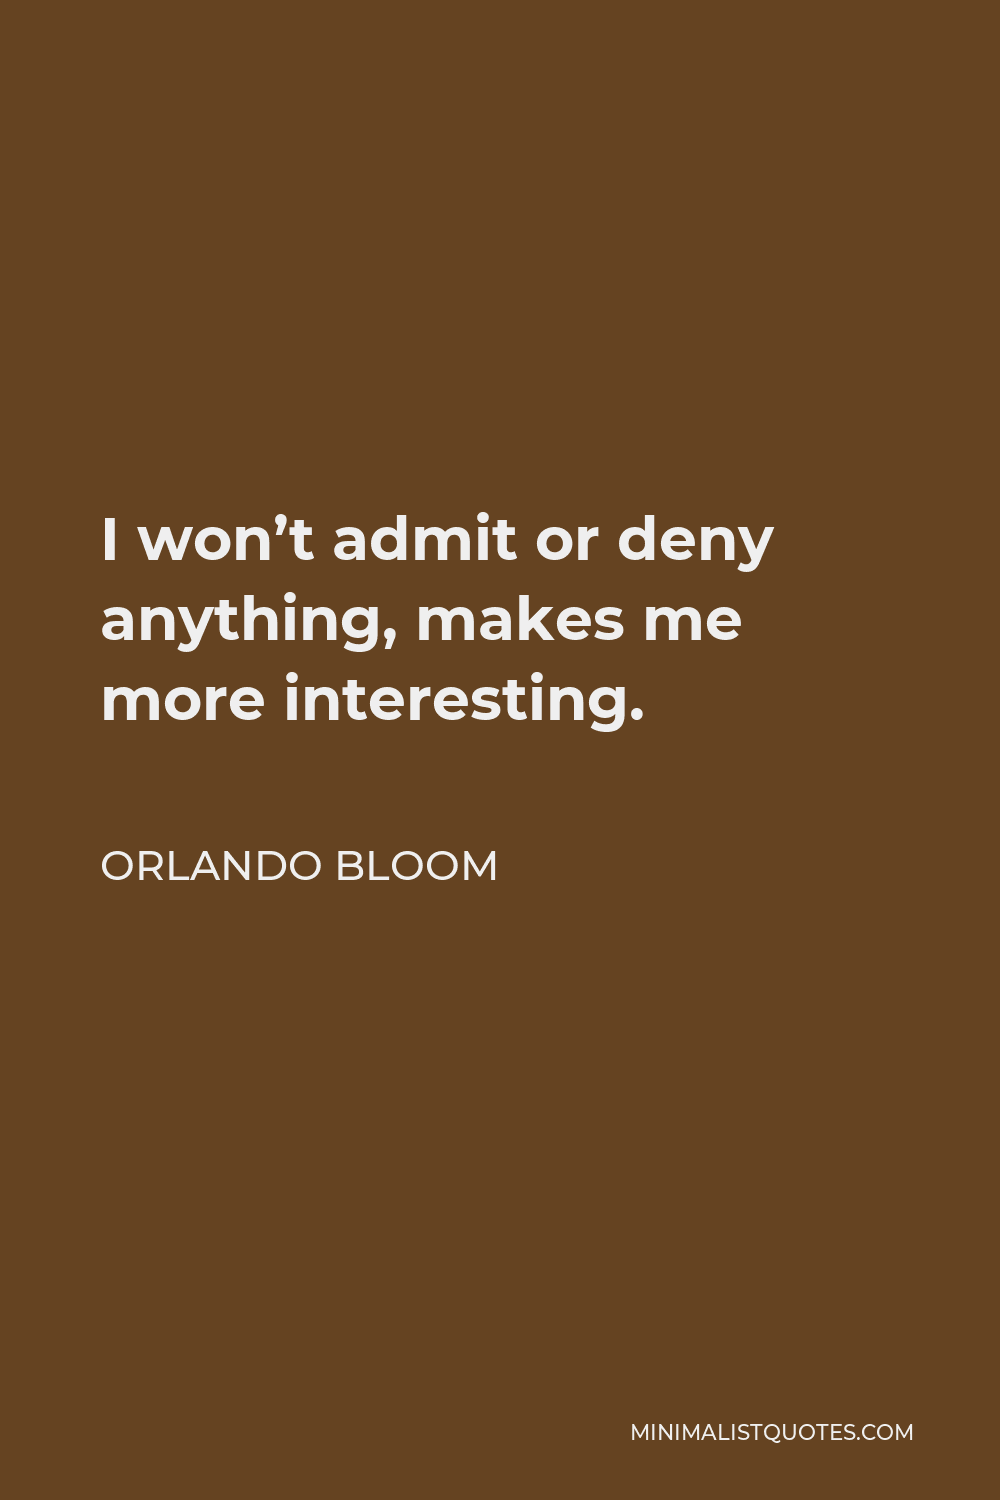 Orlando Bloom Quote - I won't admit or deny anything, makes me more interesting.